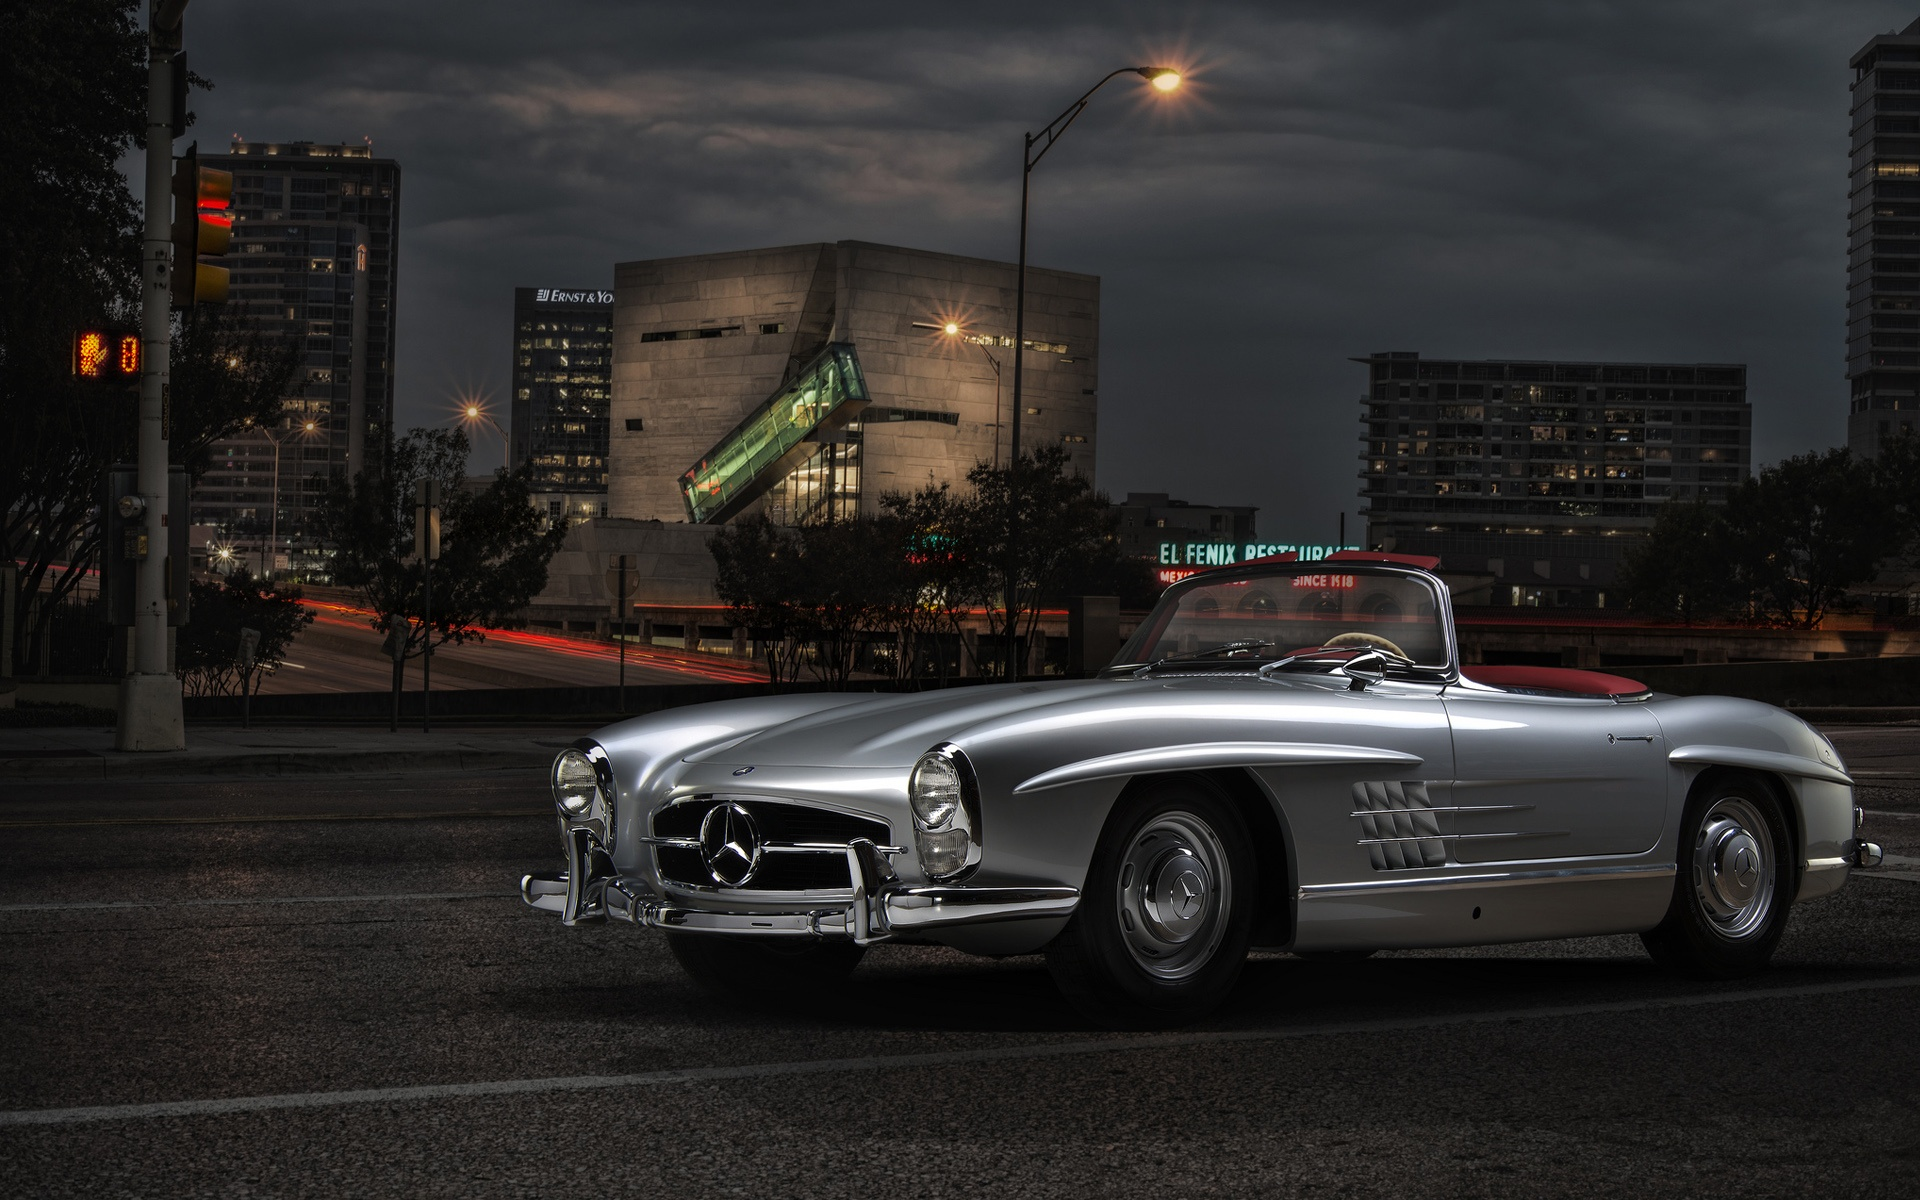 Mercedes Benz Classic wallpaper 1920x1080 1920x1200